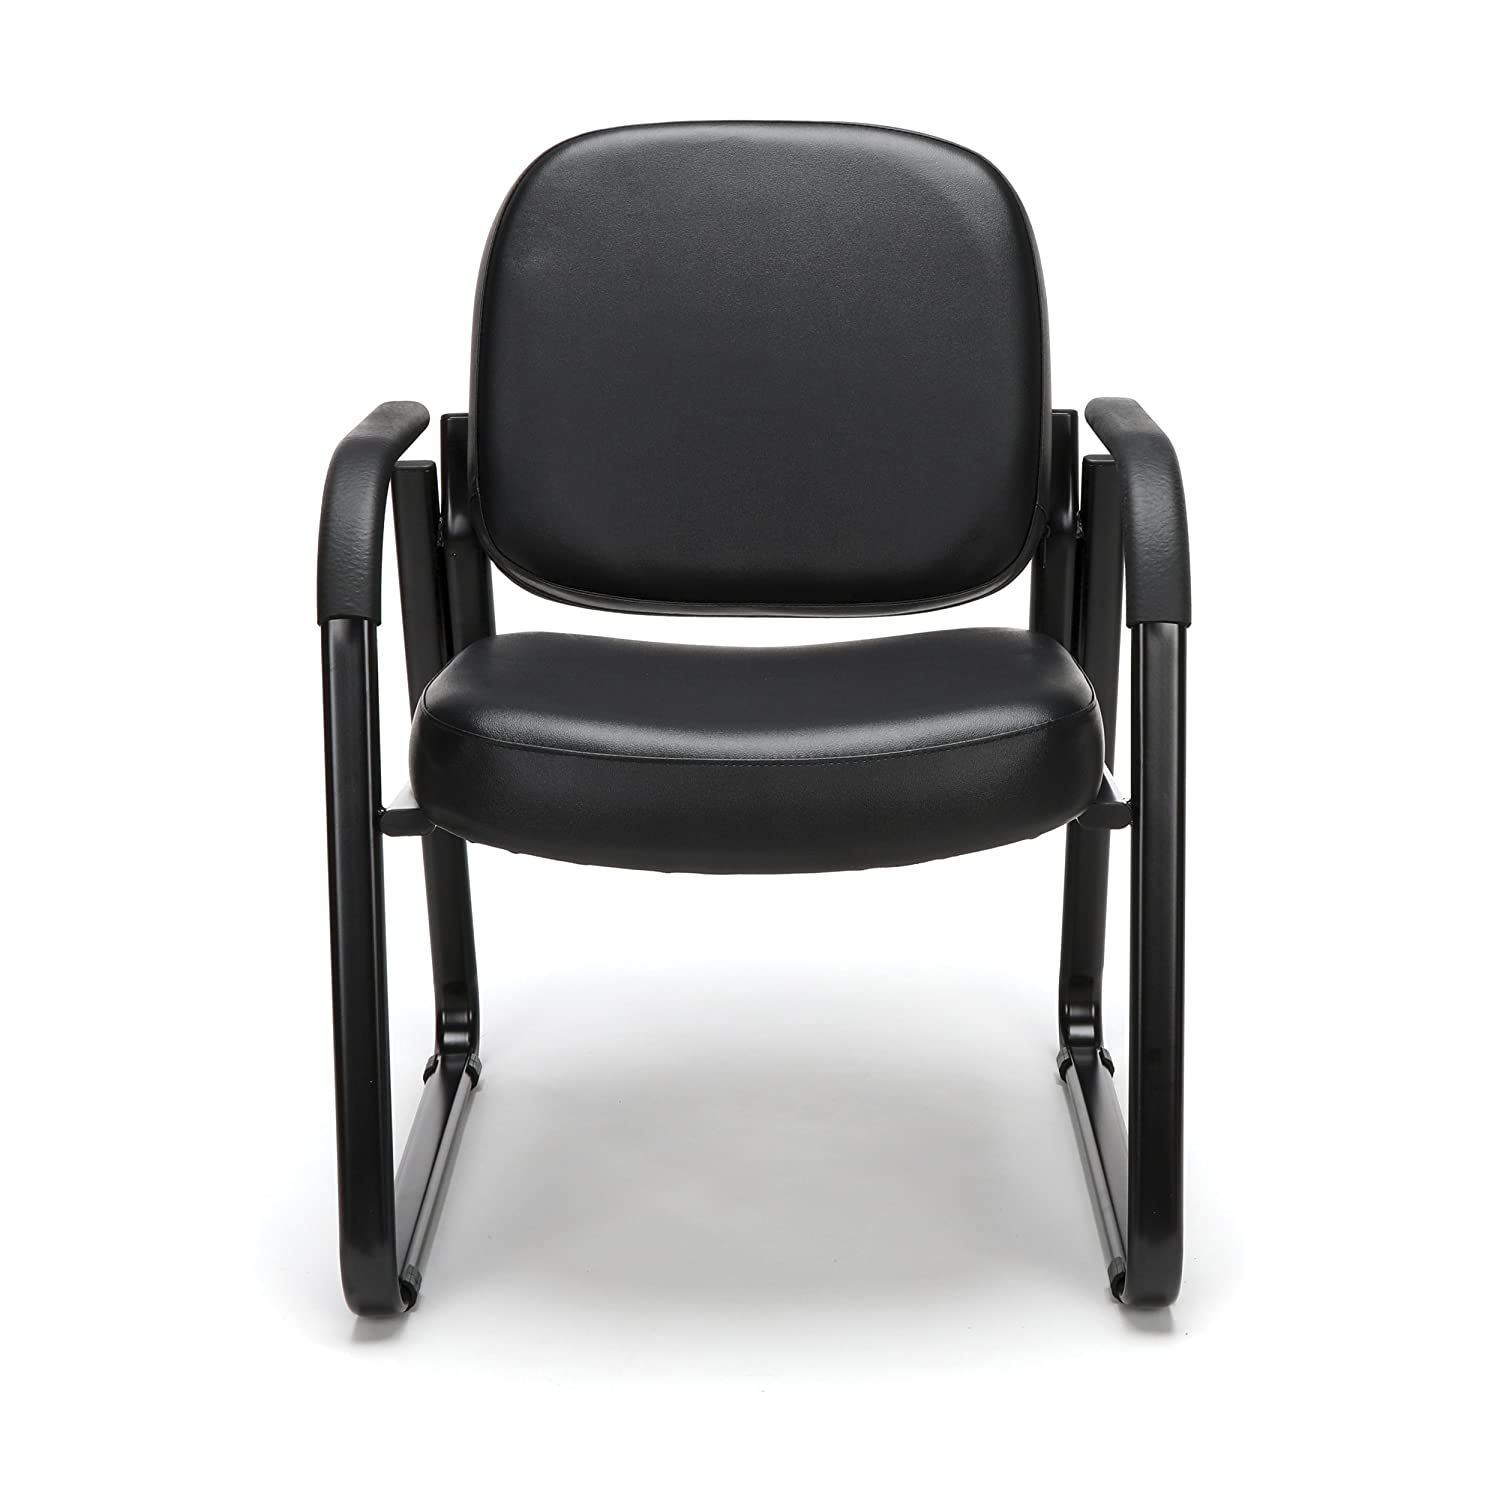 OFM Model 403-VAM Guest and Reception Chair with Arms, Anti-Microbial Anti-Bacterial Vinyl, Black